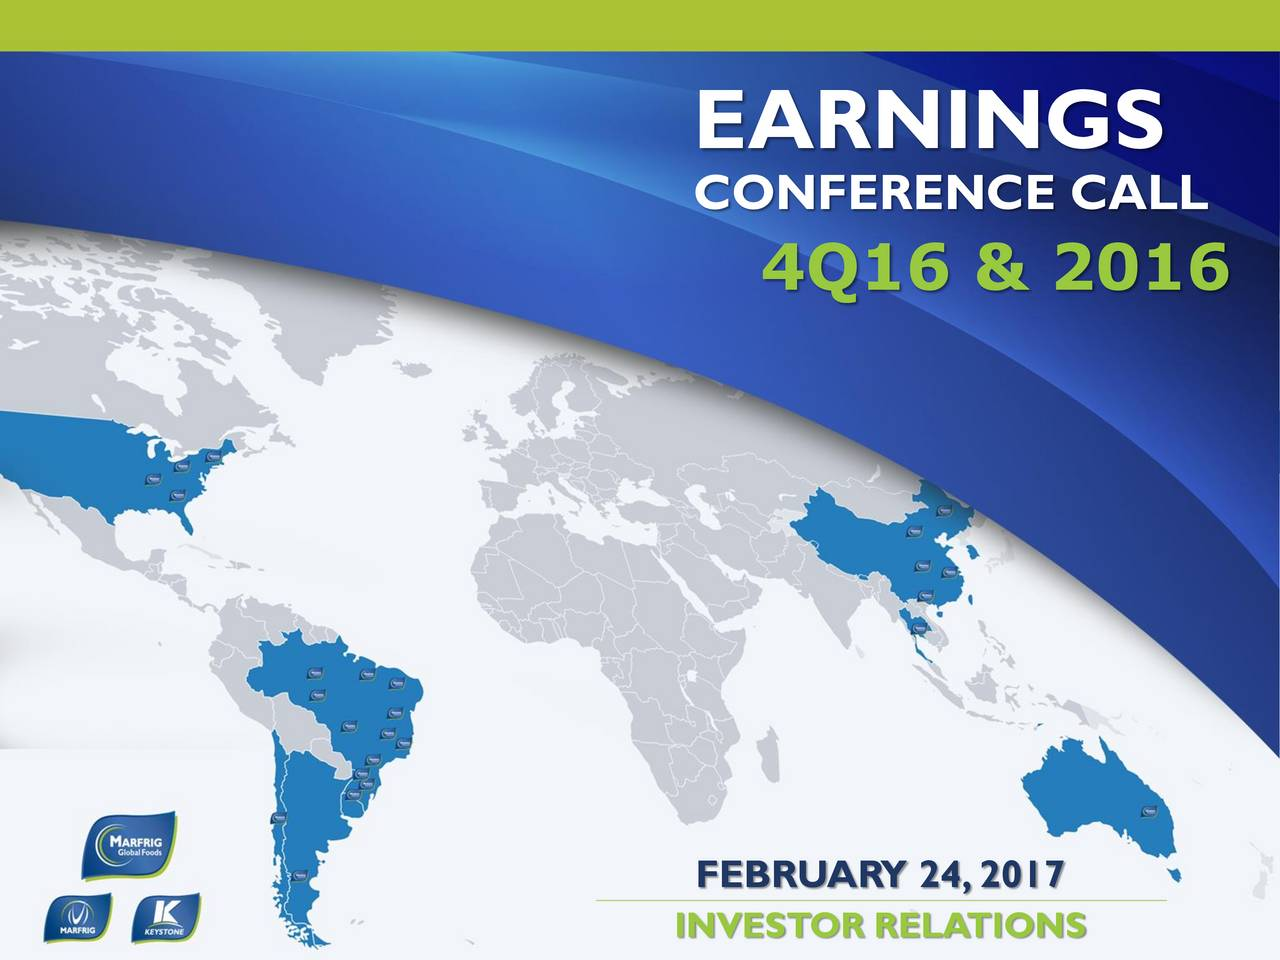 CONFERENCE CALL 4Q16 & 2016 FEBRUARY 24,2017